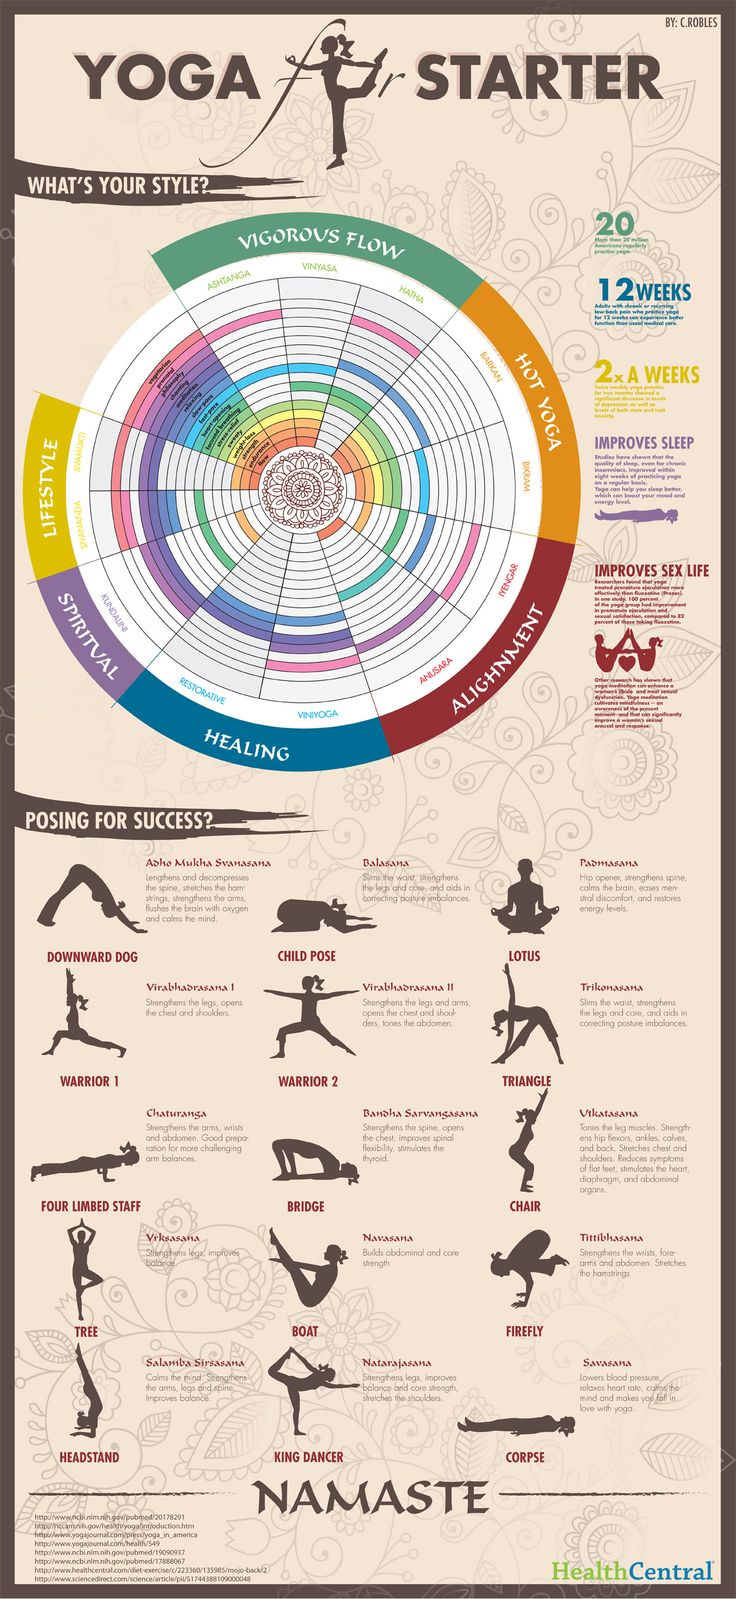 #Yoga for Starters Infographic